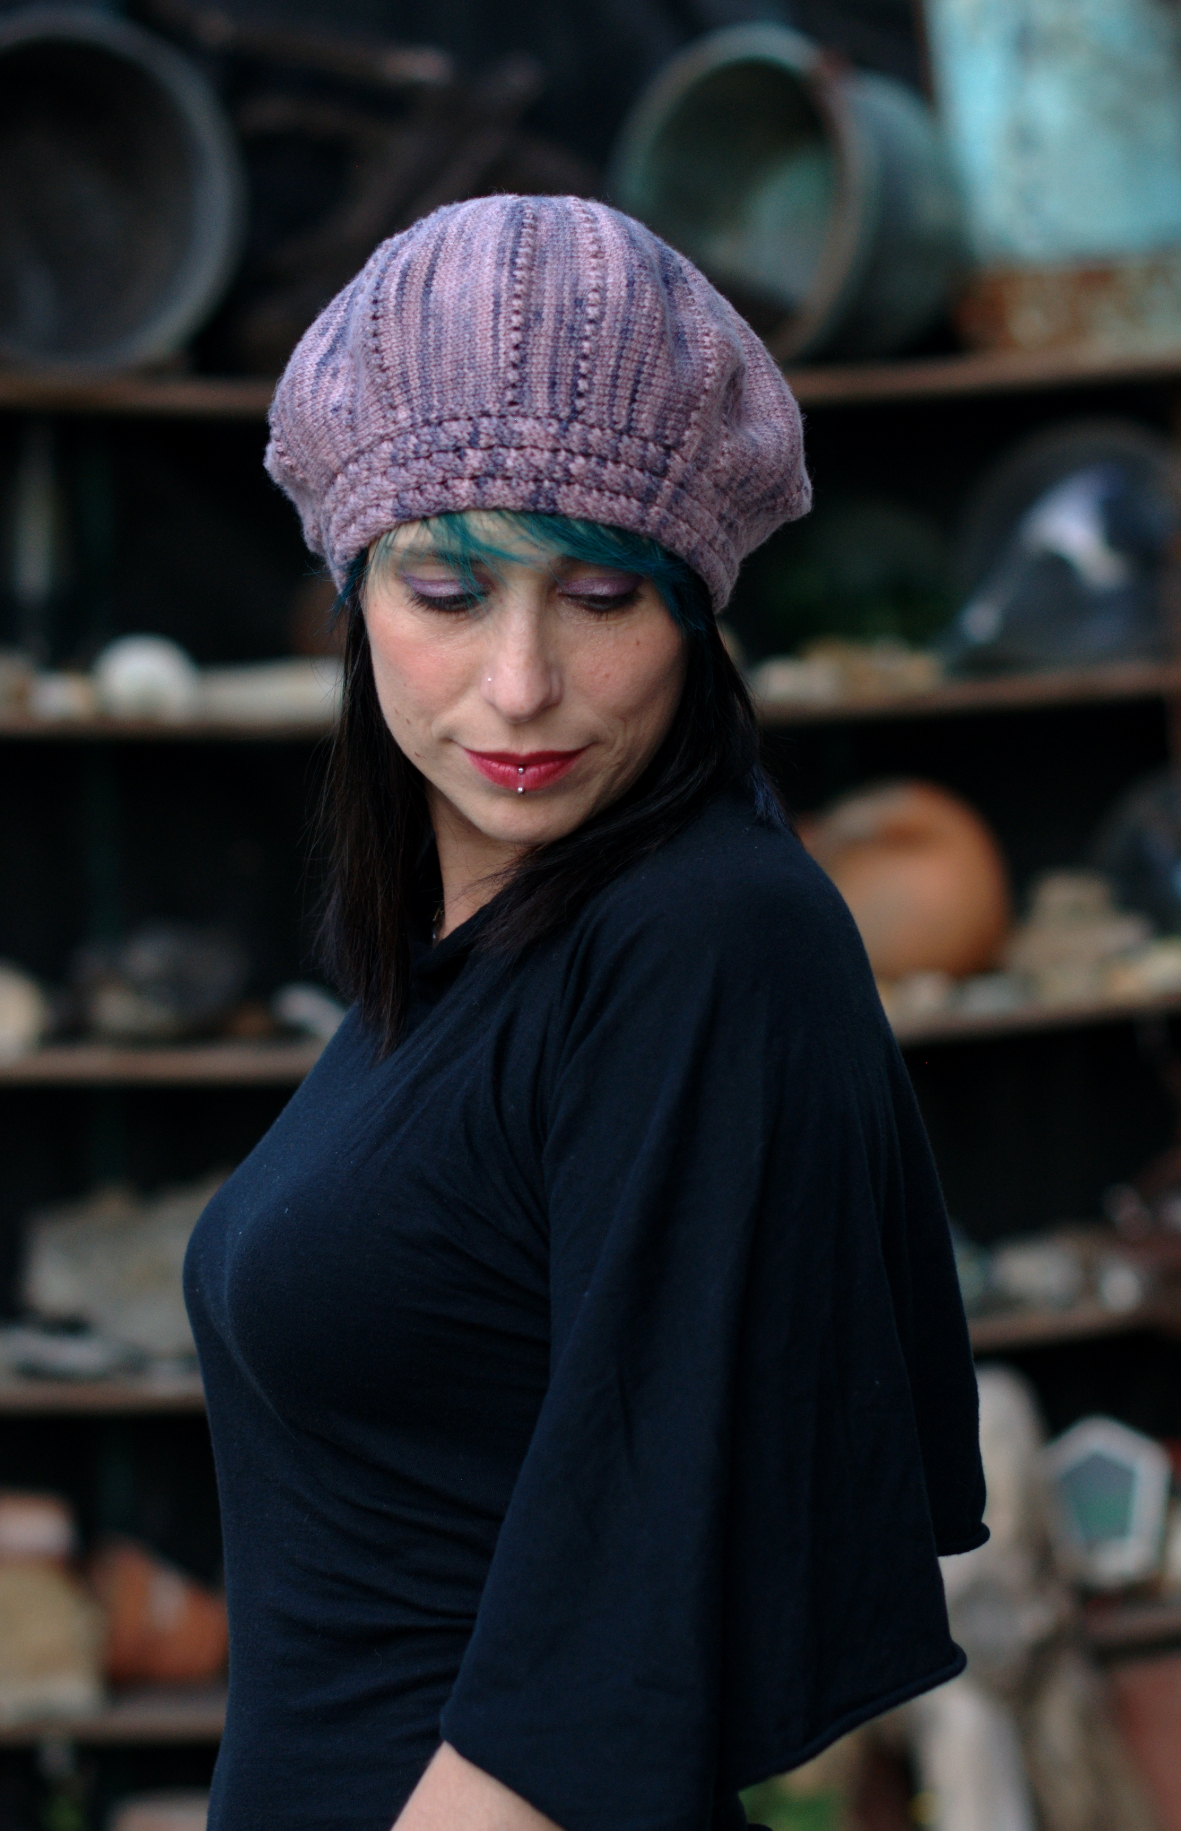 Arbacia sideways knit cable and lace beret knitting pattern